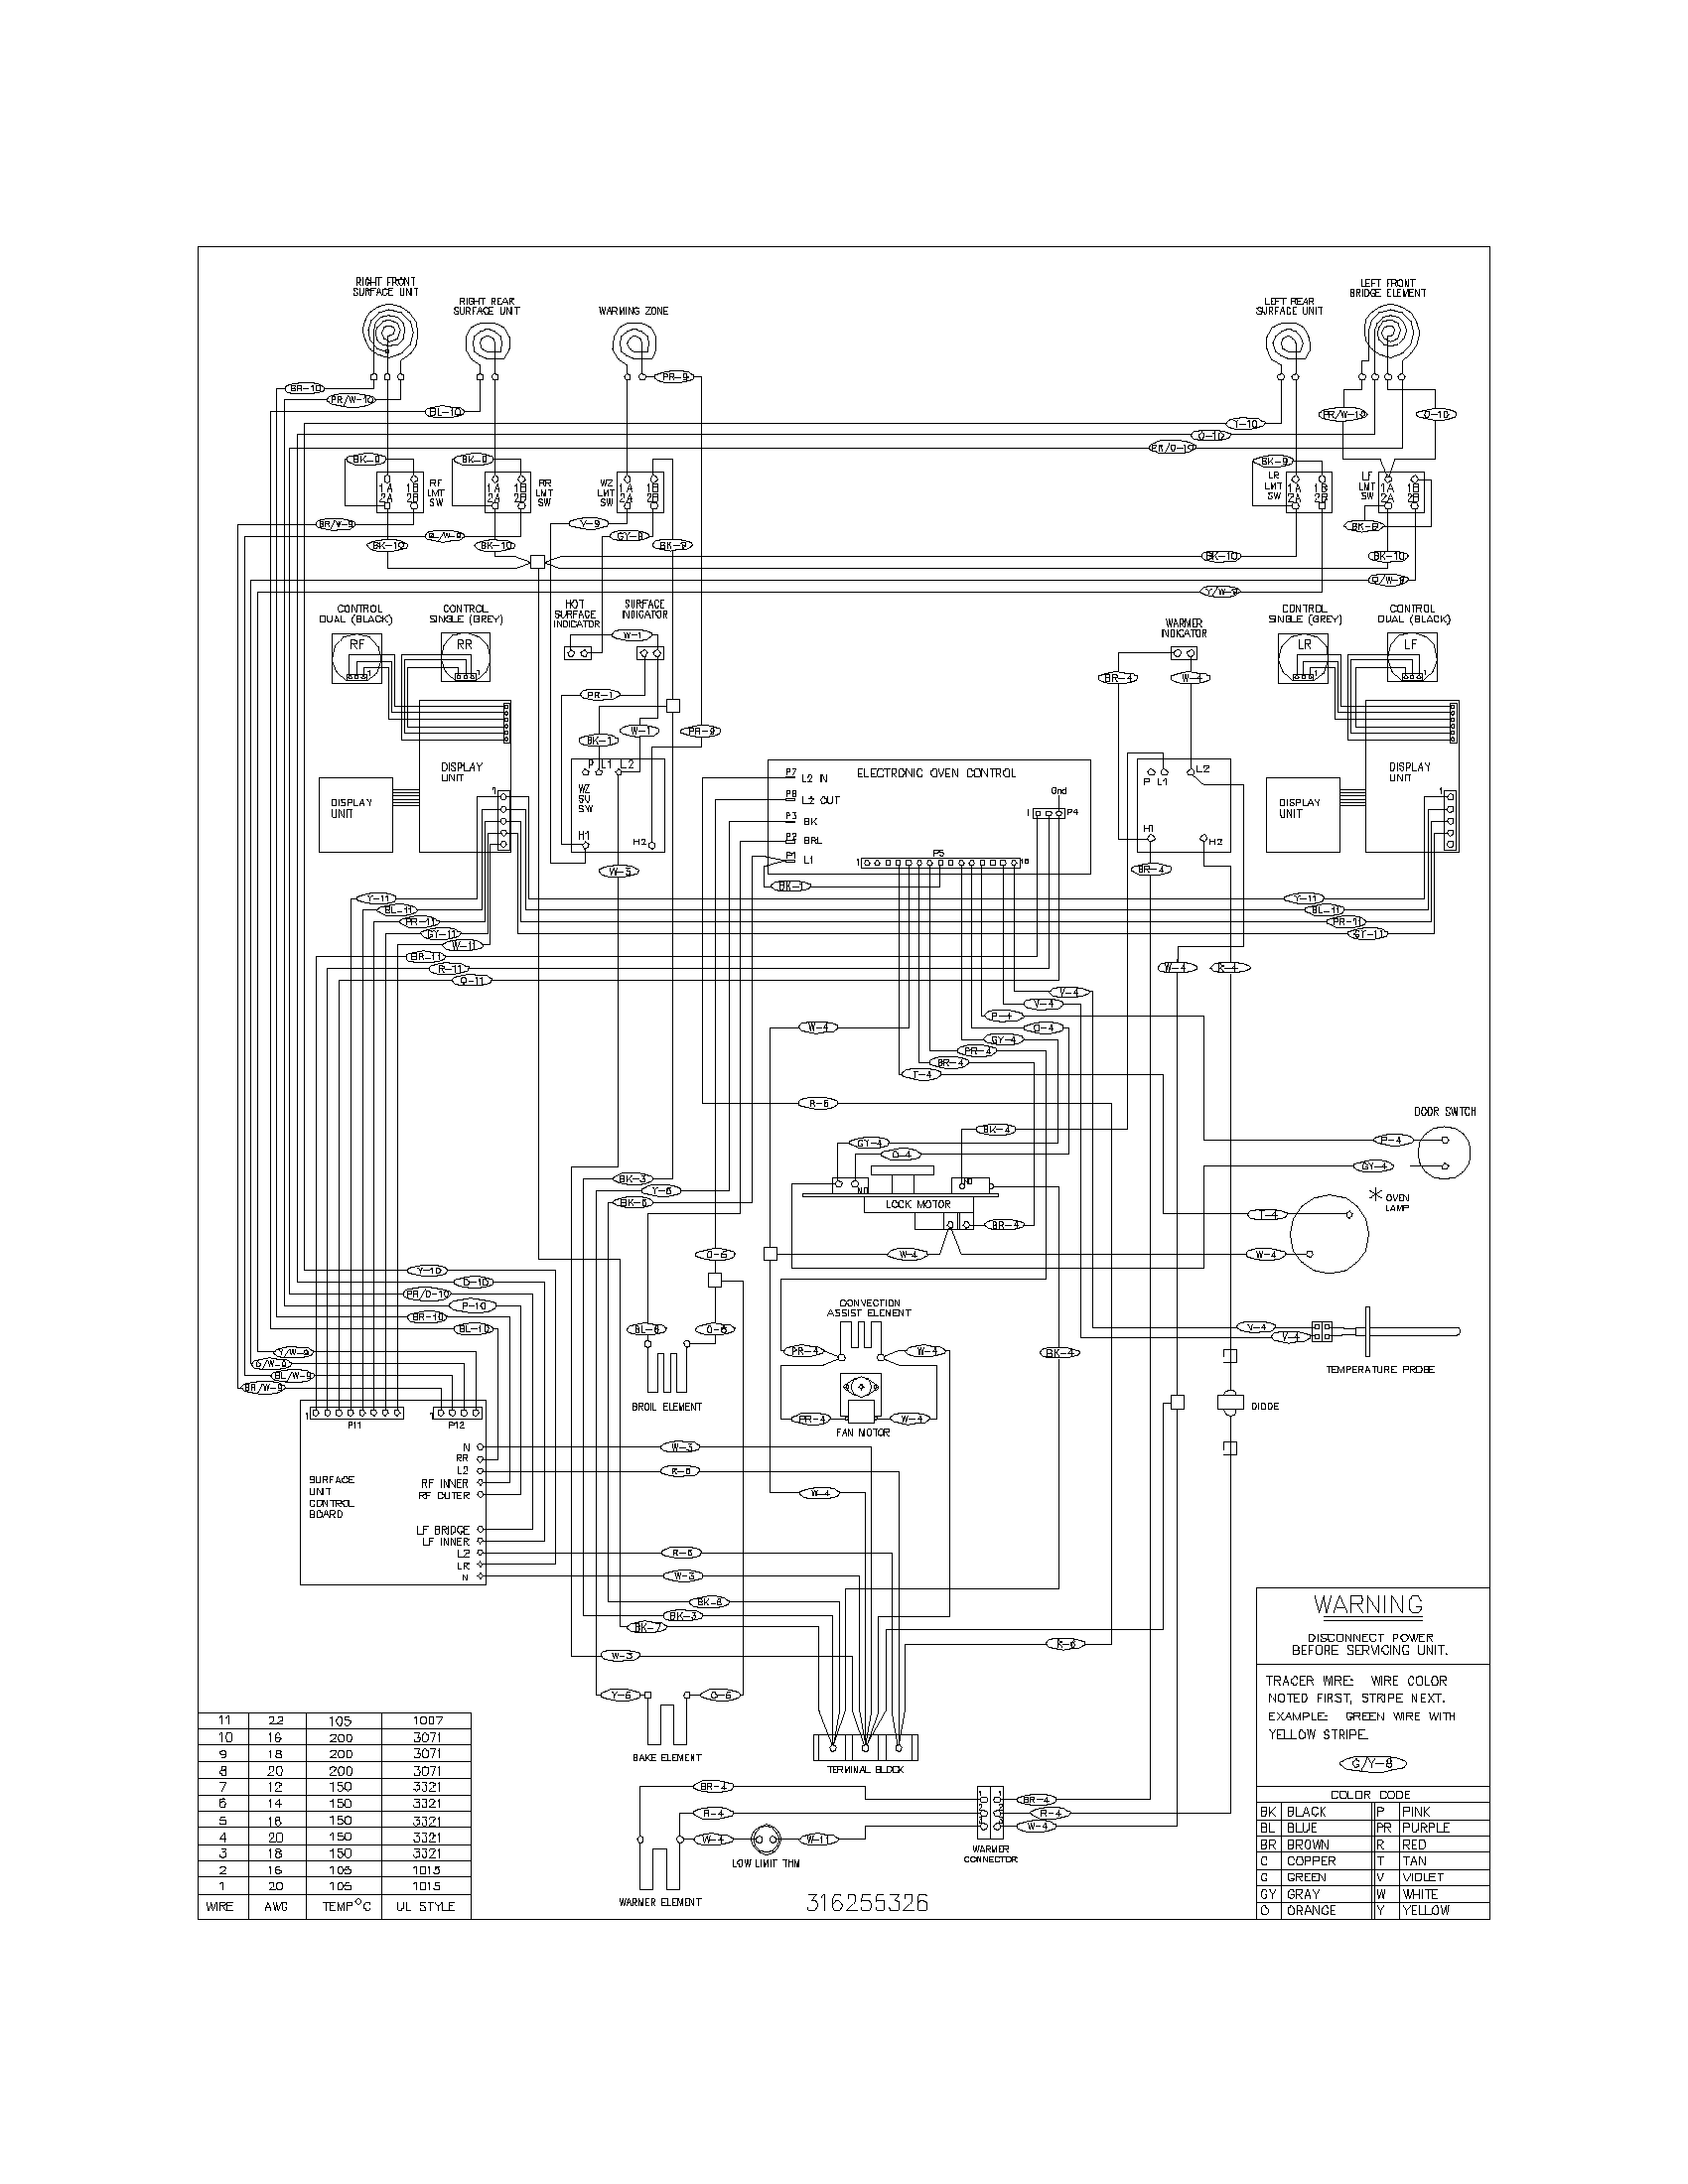 Wiring Diagram For Frigidaire Stove - WIRE Center •